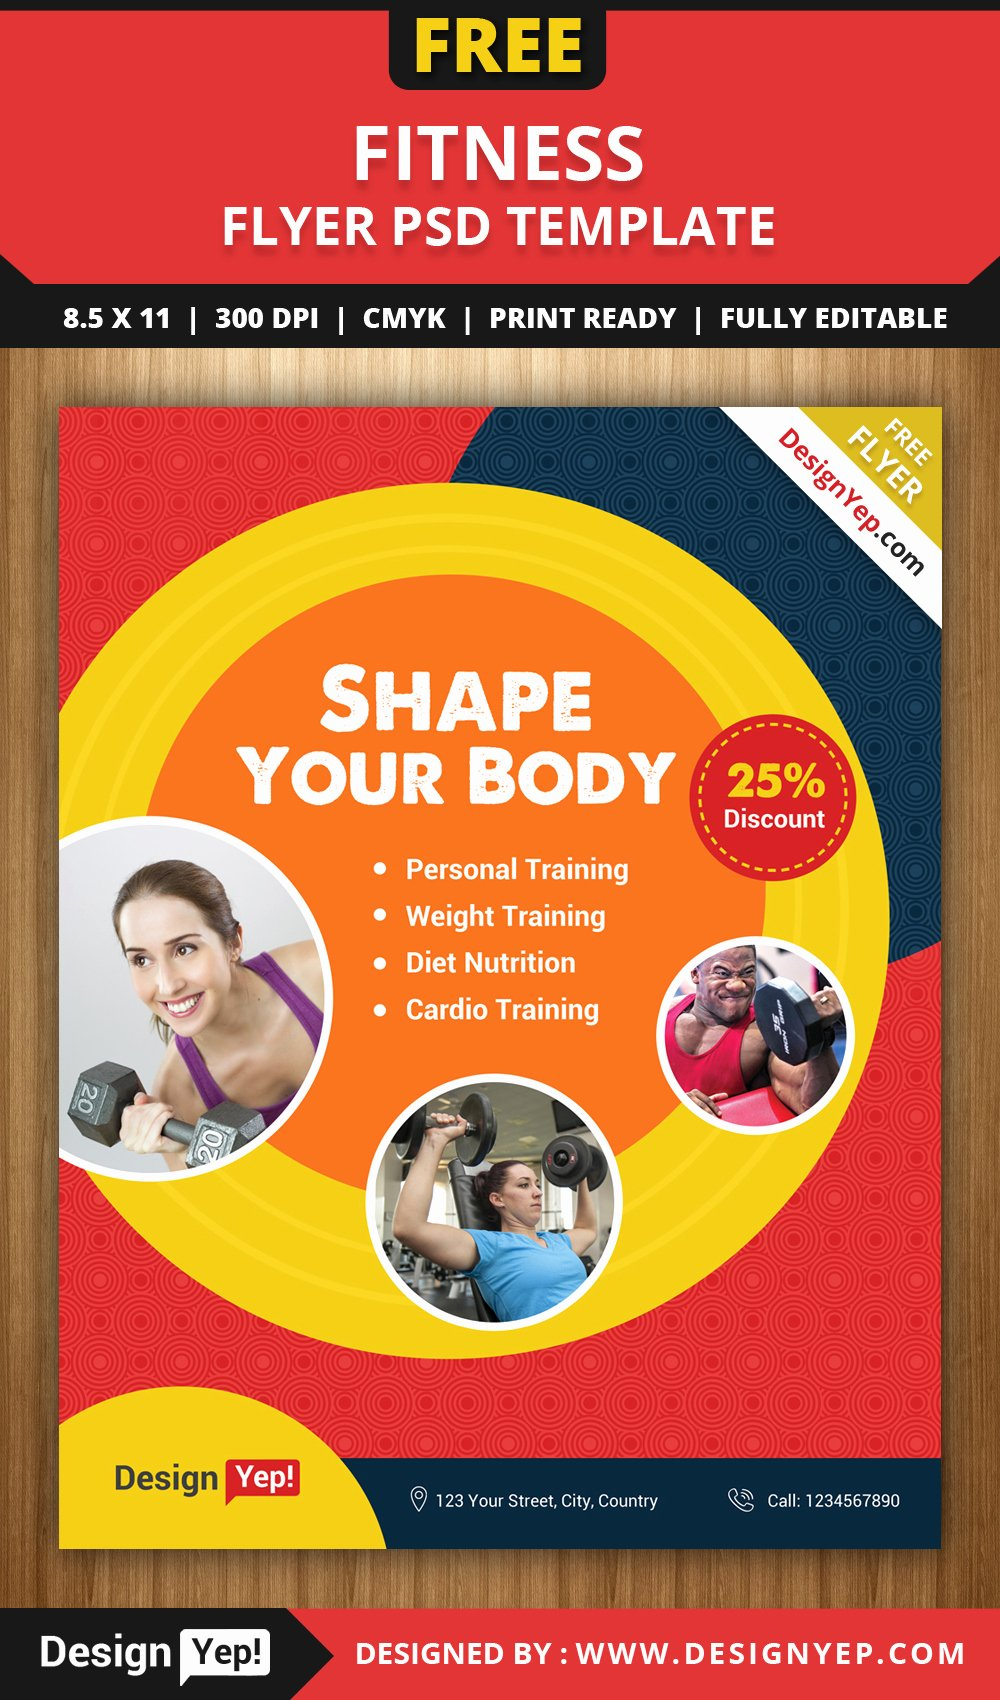 Free Fitness Flyers Templates Inspirational Free Clean Fitness Gym Flyer Psd Template Designyep